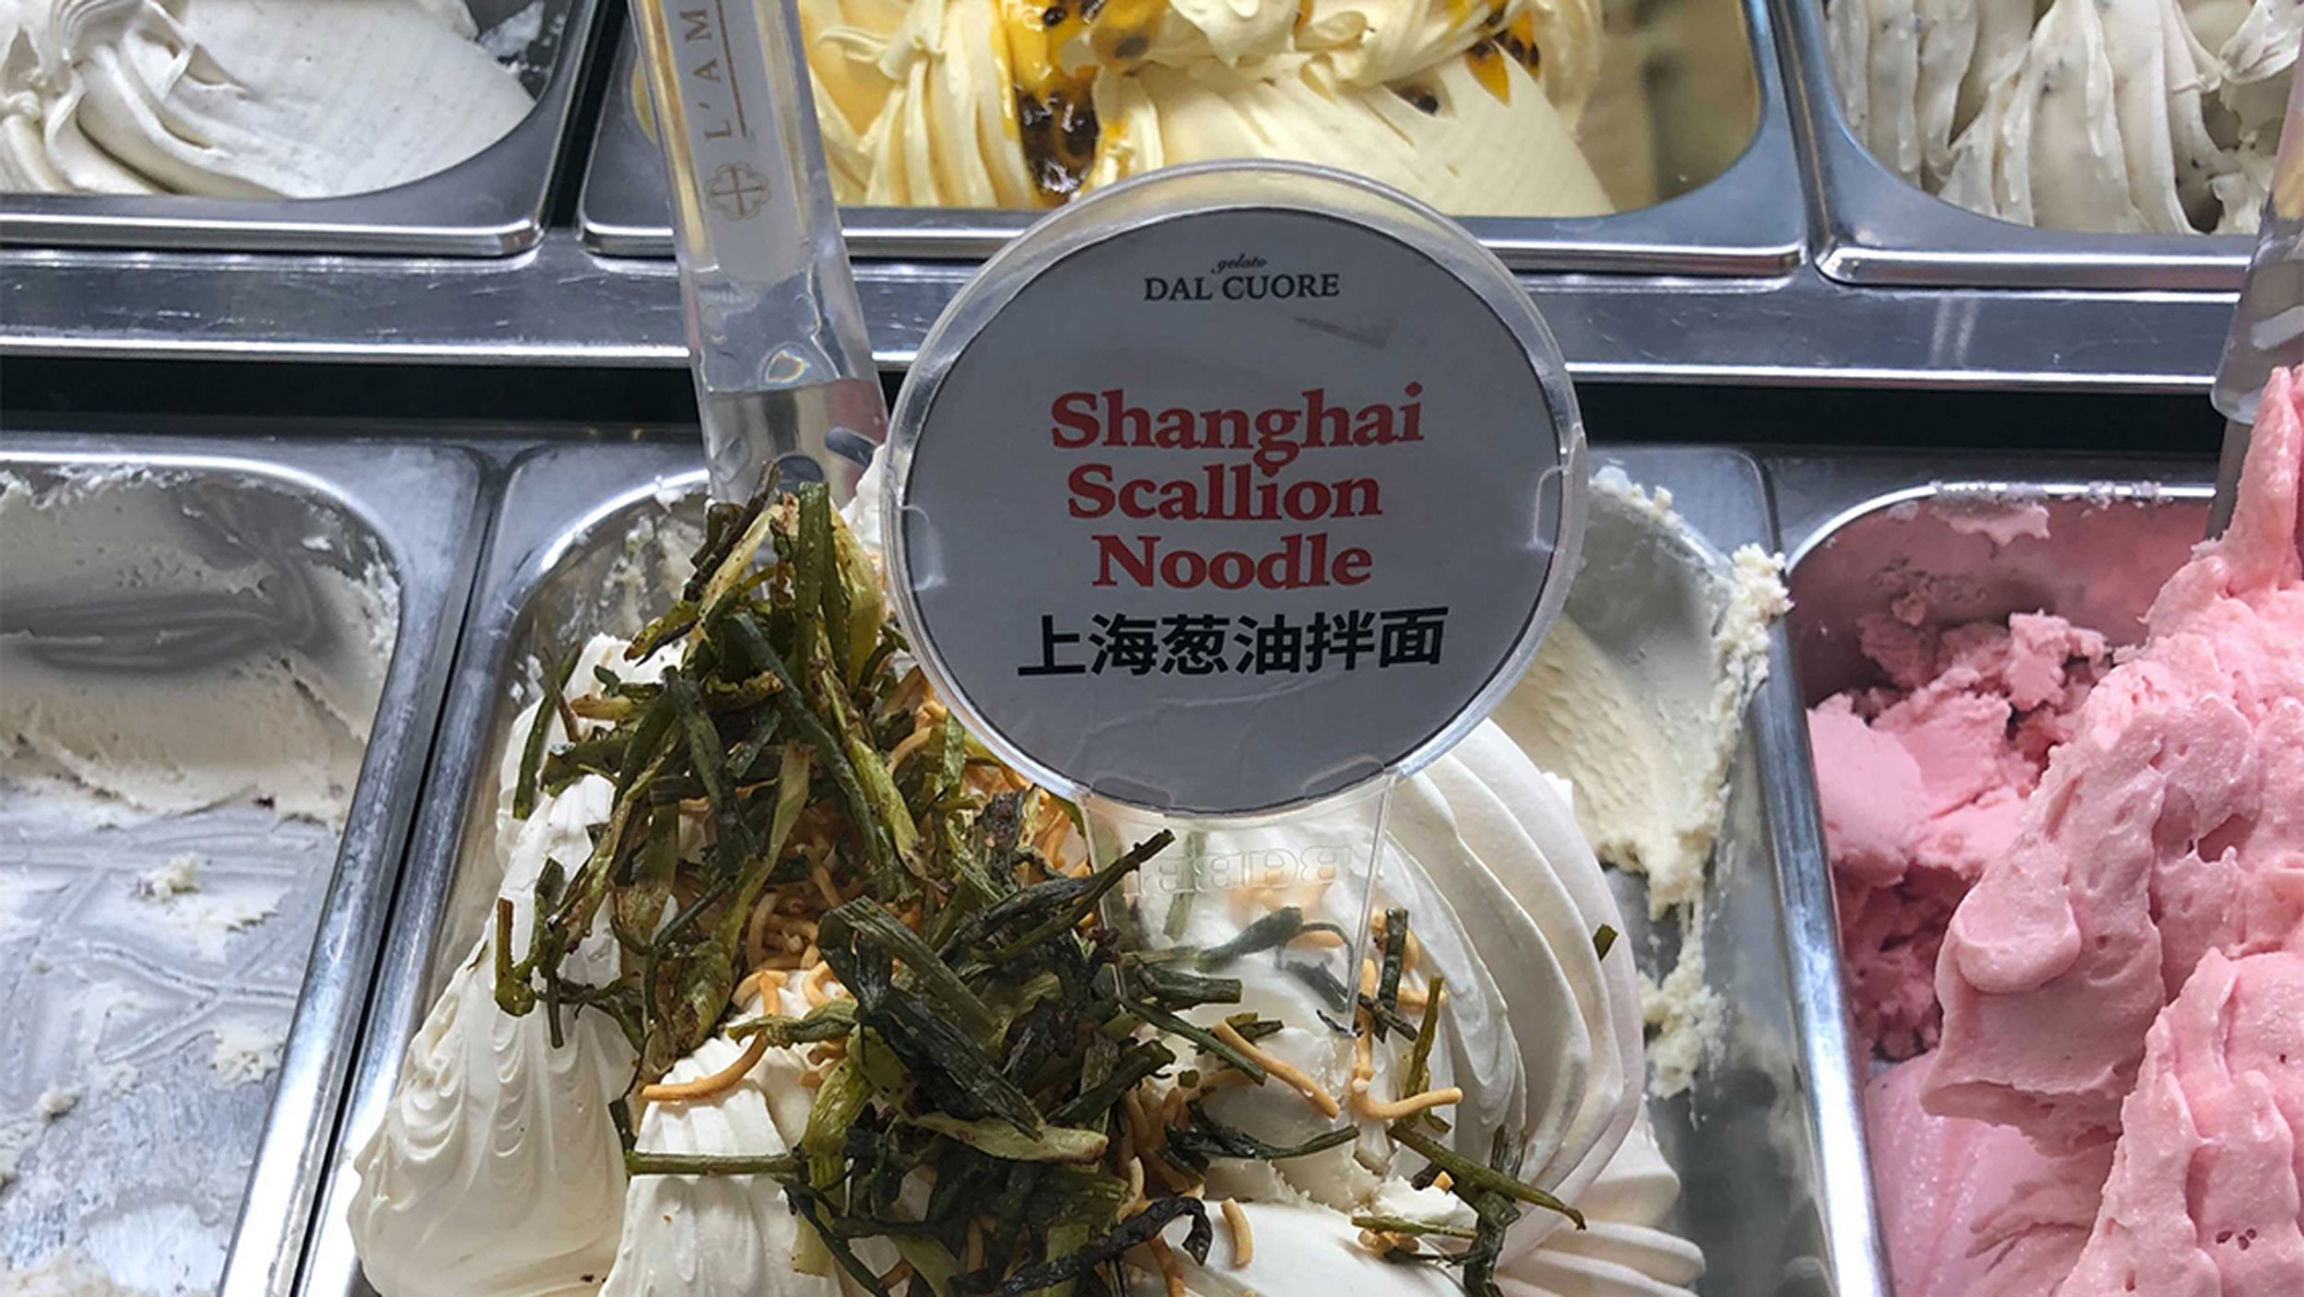 Ice cream is becoming hugely popular in China, as shops experiment | PRI